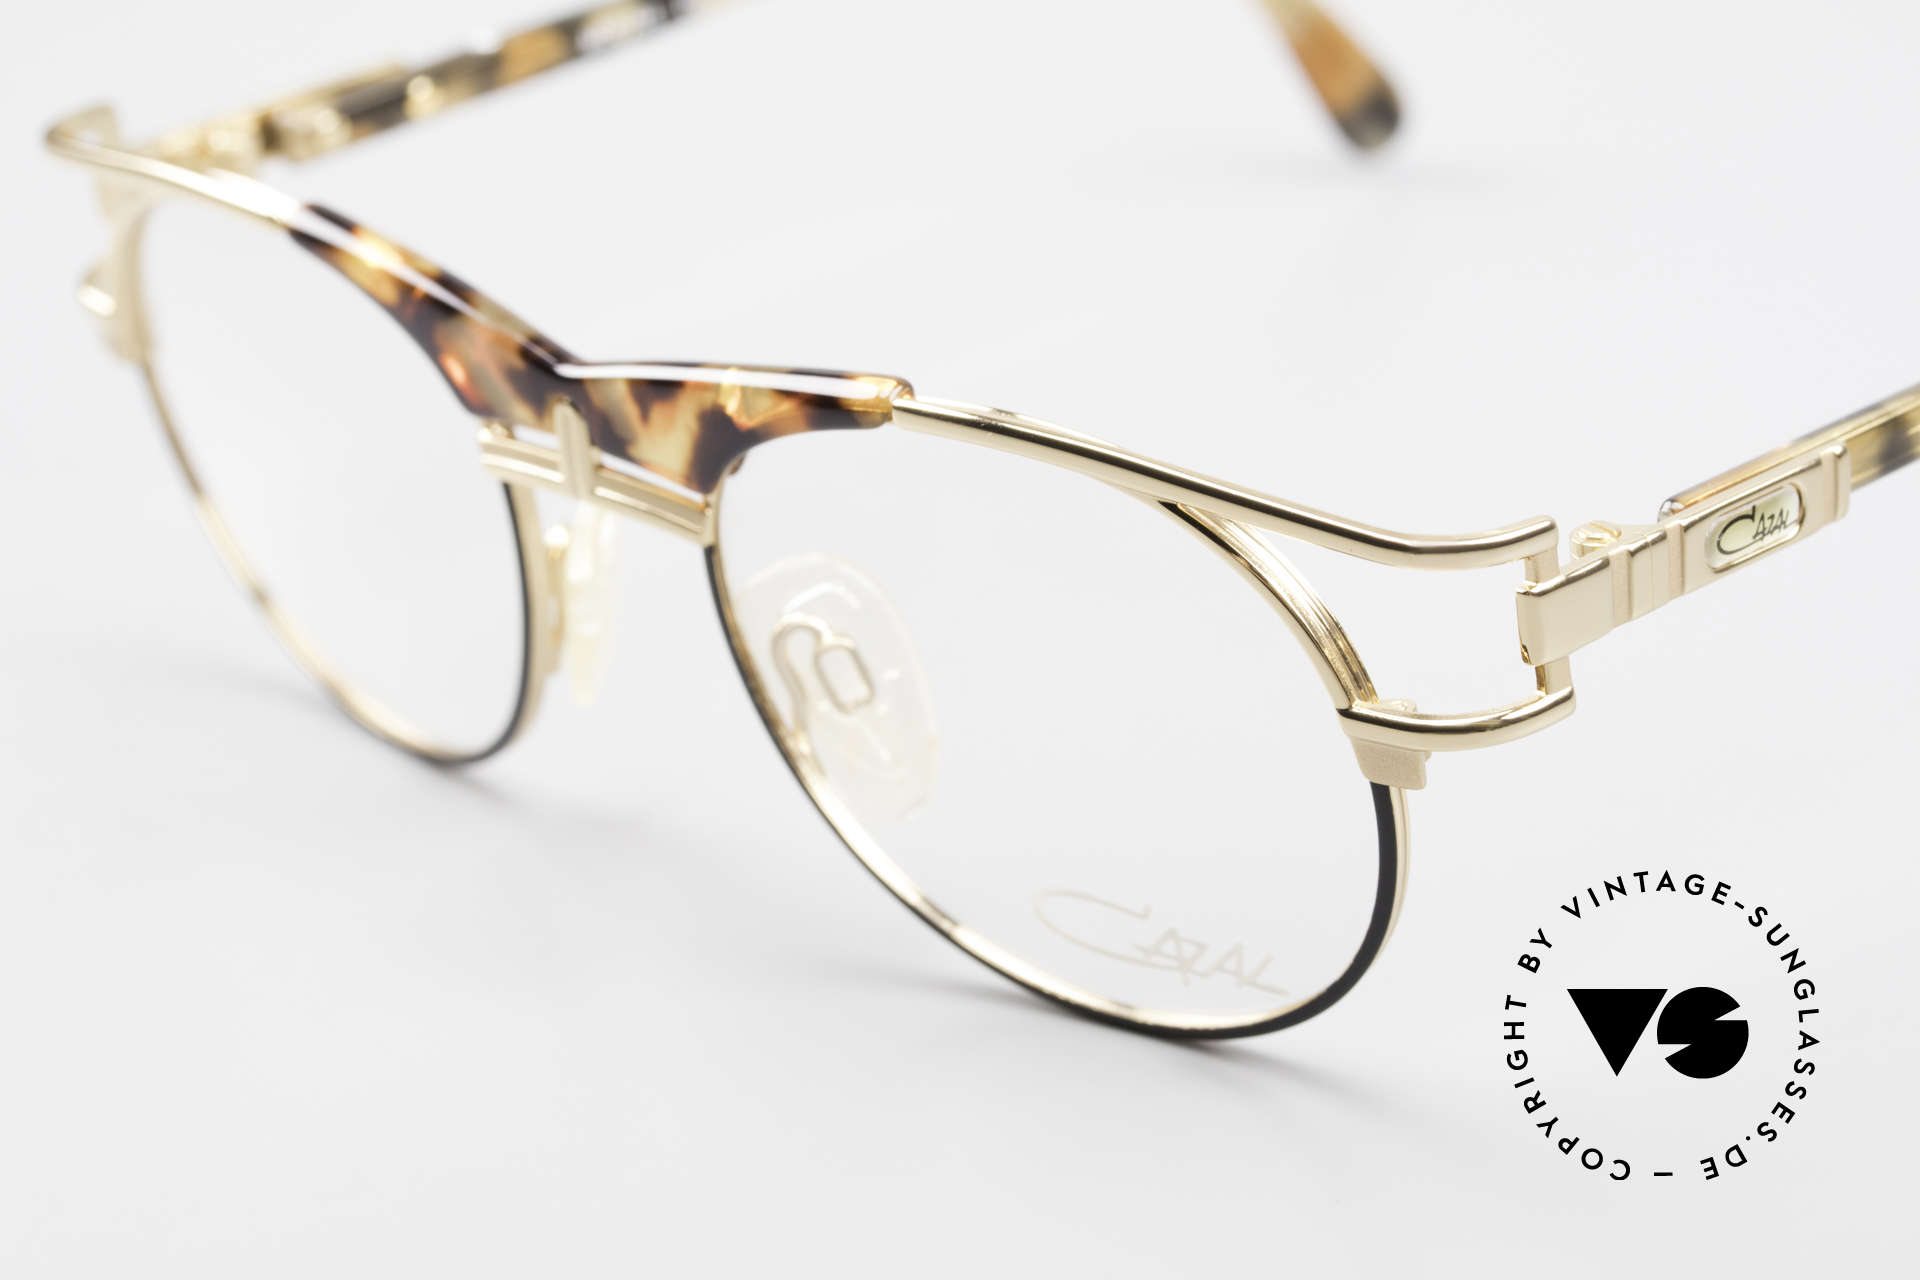 Cazal 244 Iconic 90's Vintage Eyeglasses, never worn (like all our vintage CAZAL rarities), Made for Men and Women